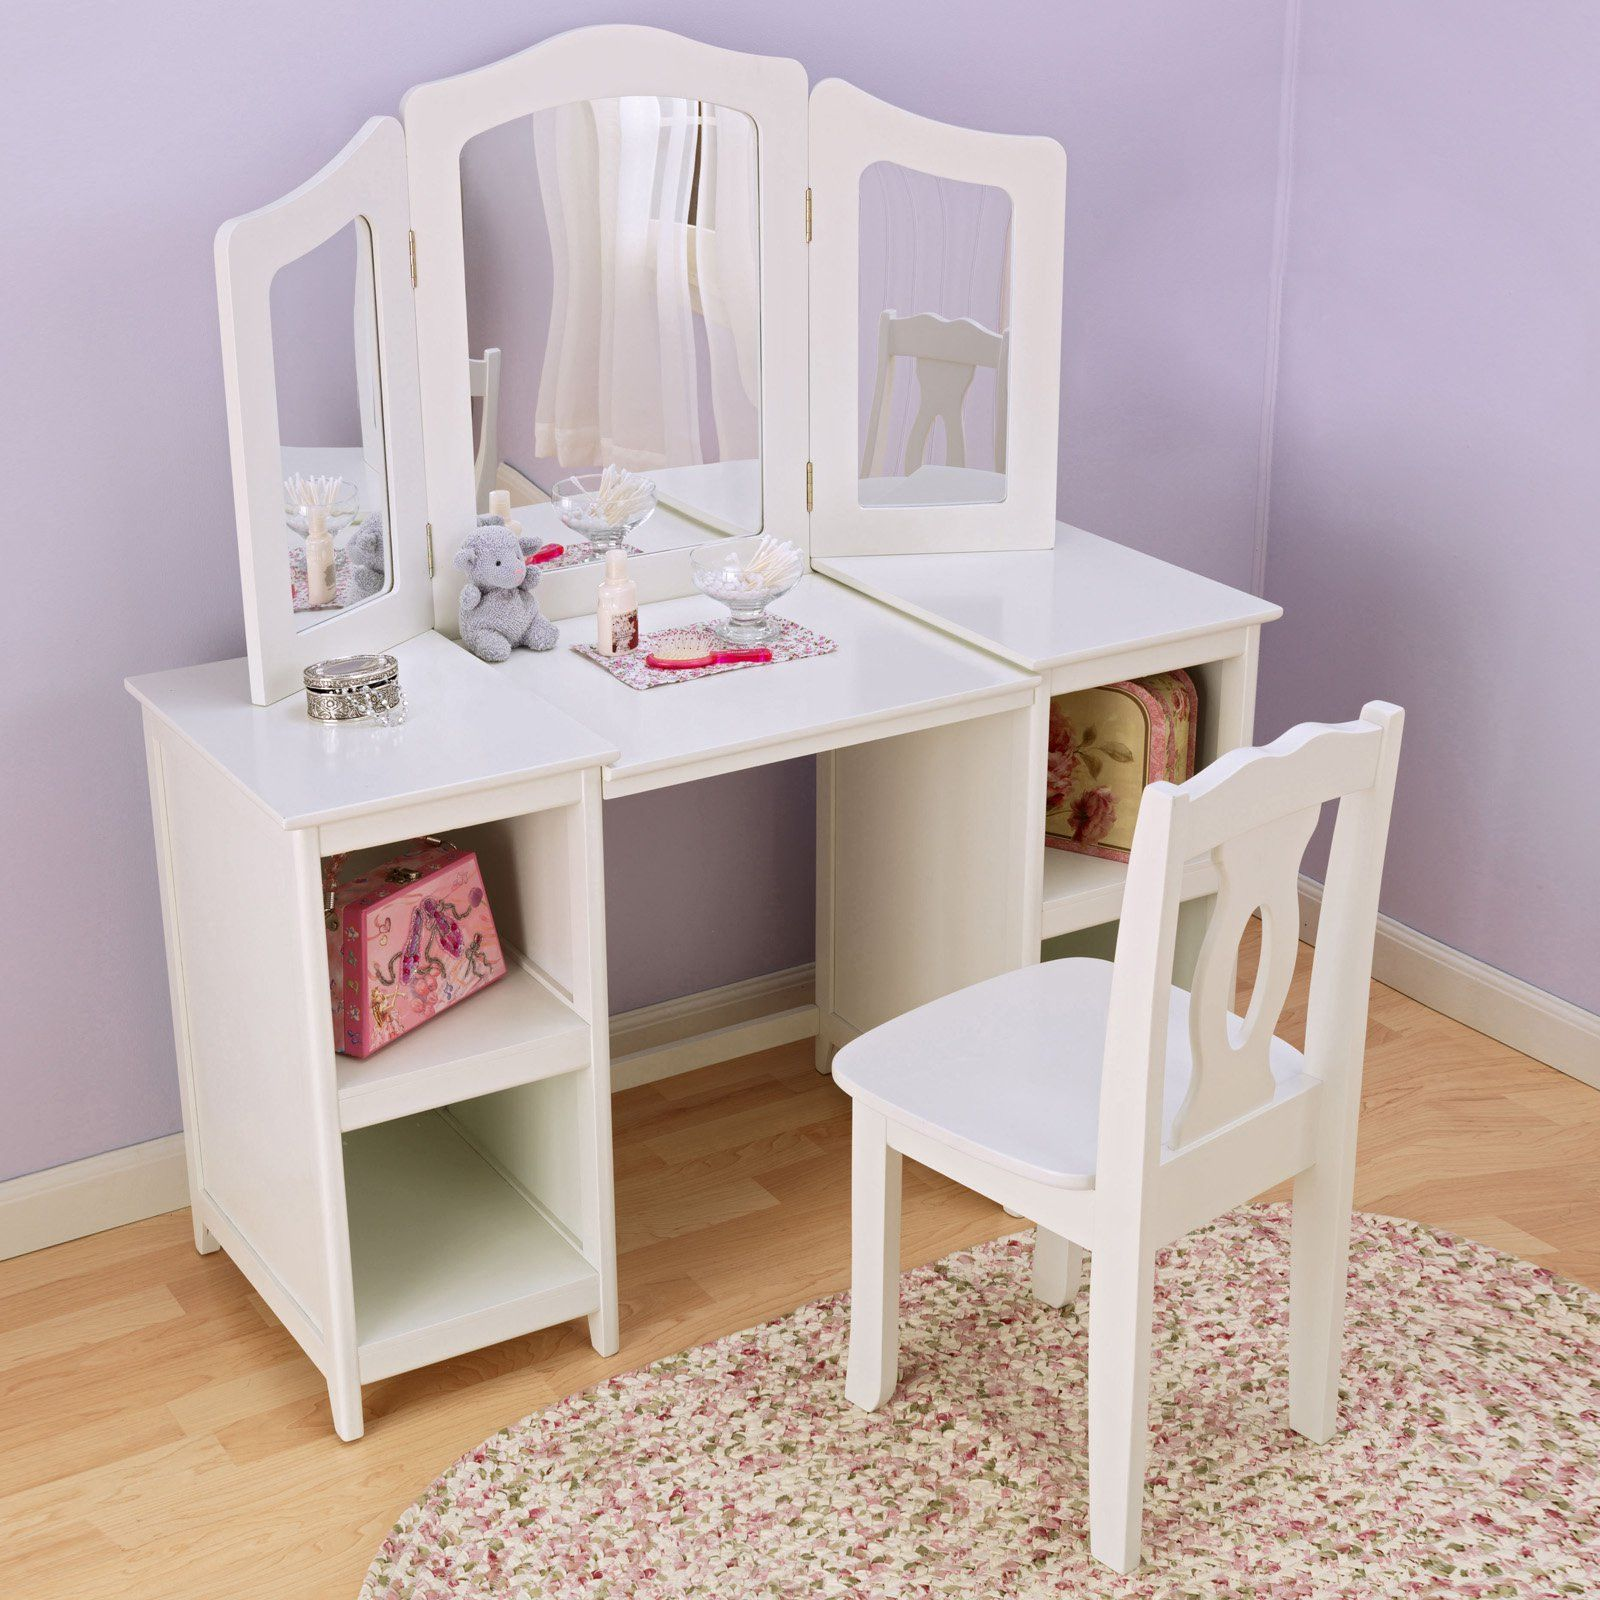 Find the best powerful photos vanity table and chair collections